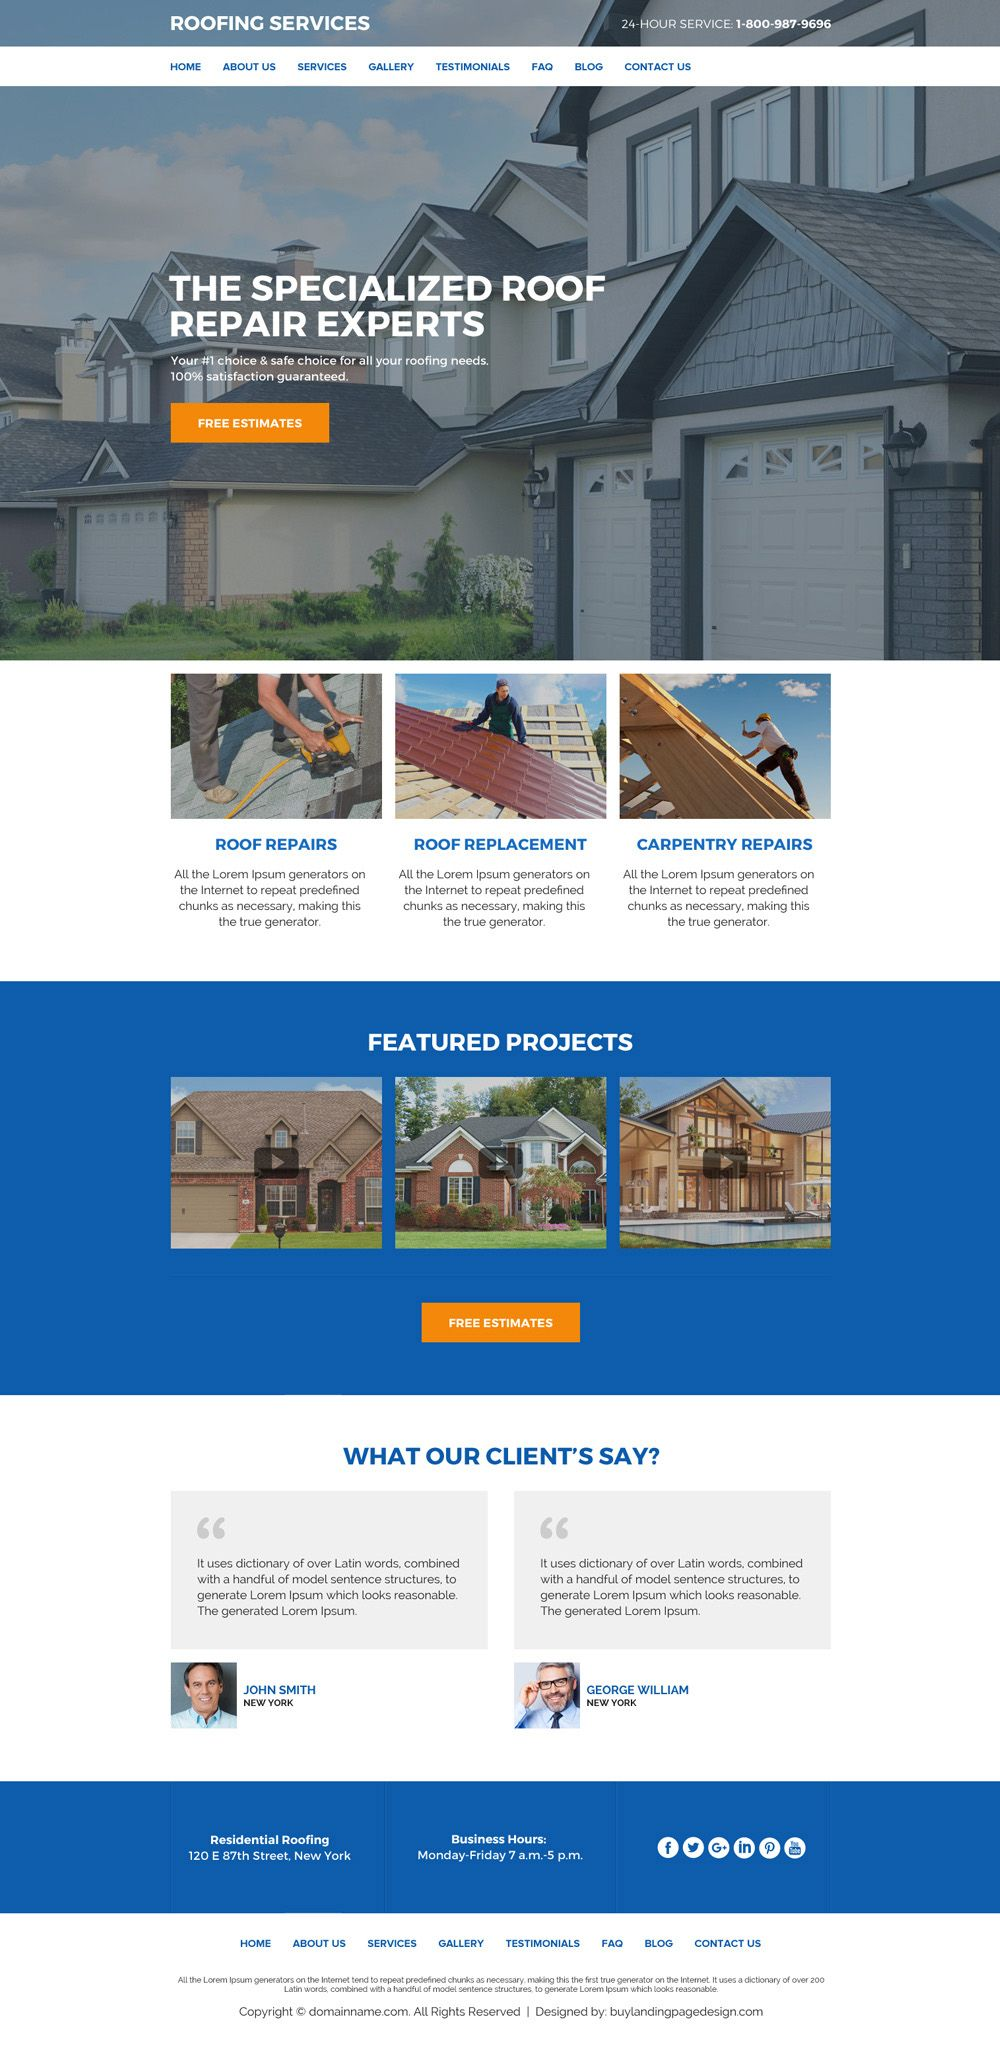 Commercial And Residential Roofing Service Website Designs Roofing Services Roofing Website Design